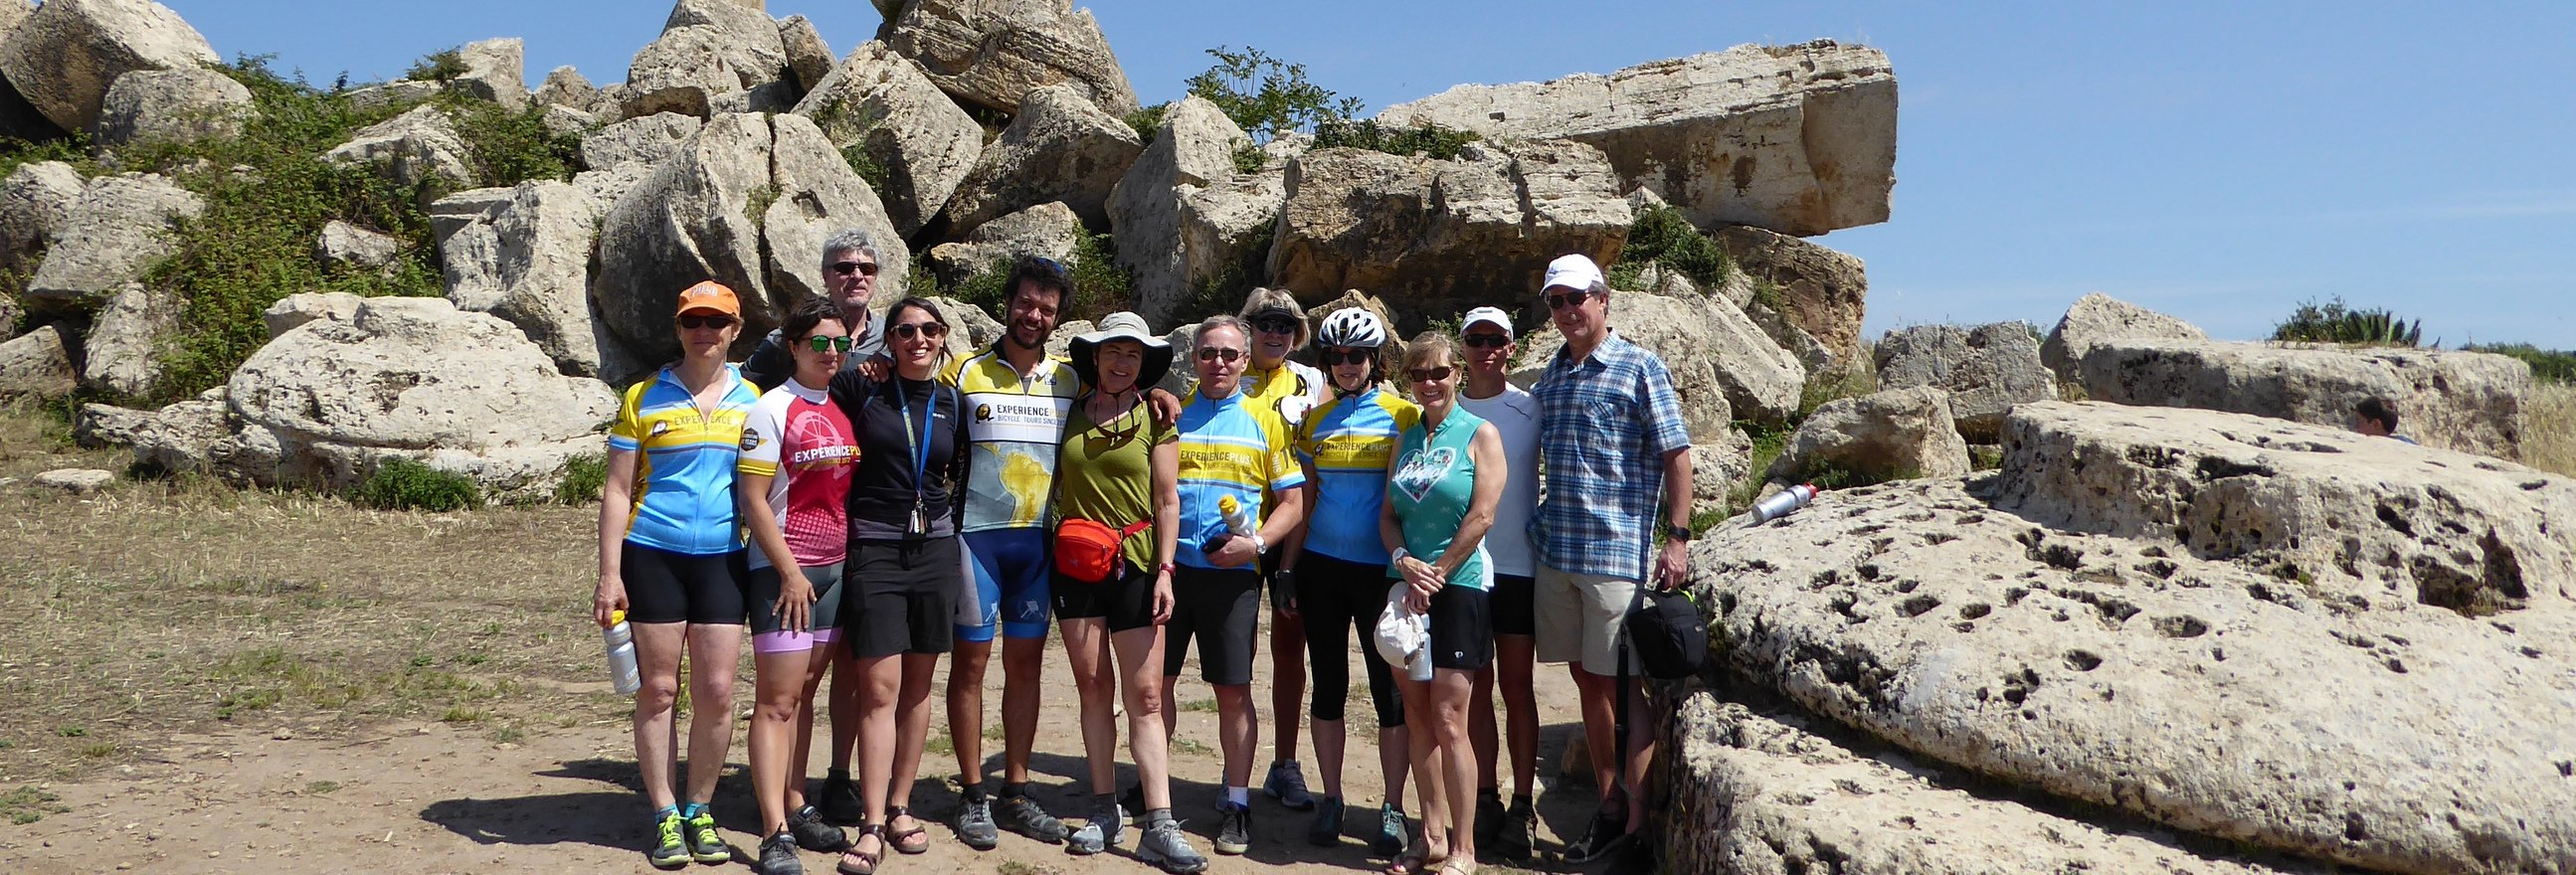 cycling in Sicily with a group of friends on a guided bike tour in Sicily.